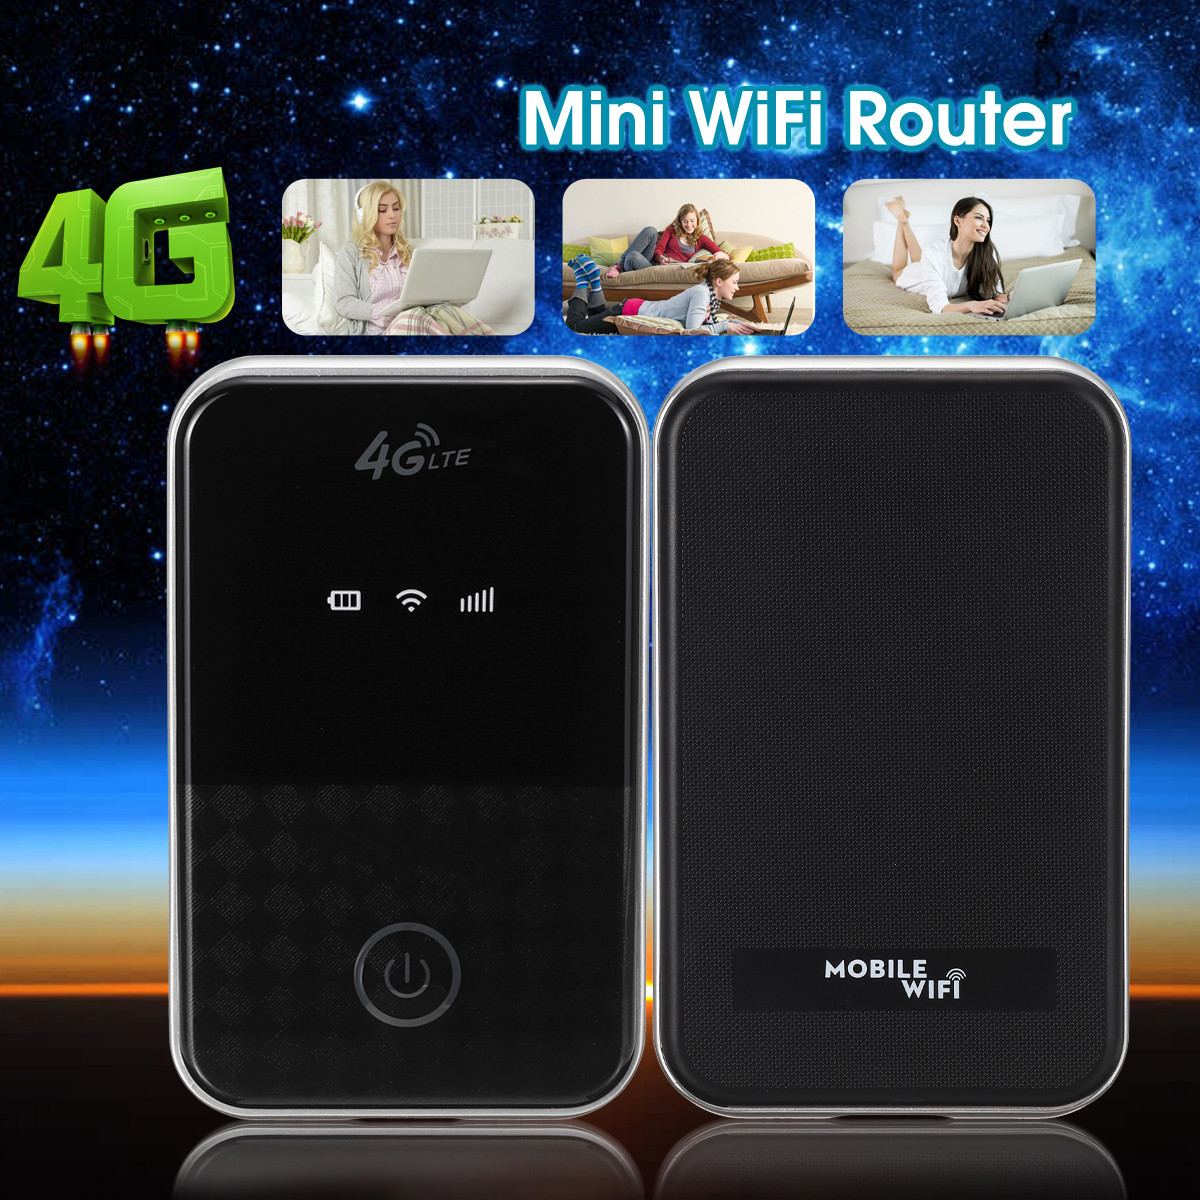 Wireless Portable Pocket Router Portable Pocket Wifi FDD B1 B3 B7 B8 B20 WCDMA B1 B5 B8 standard sim card 150mbps